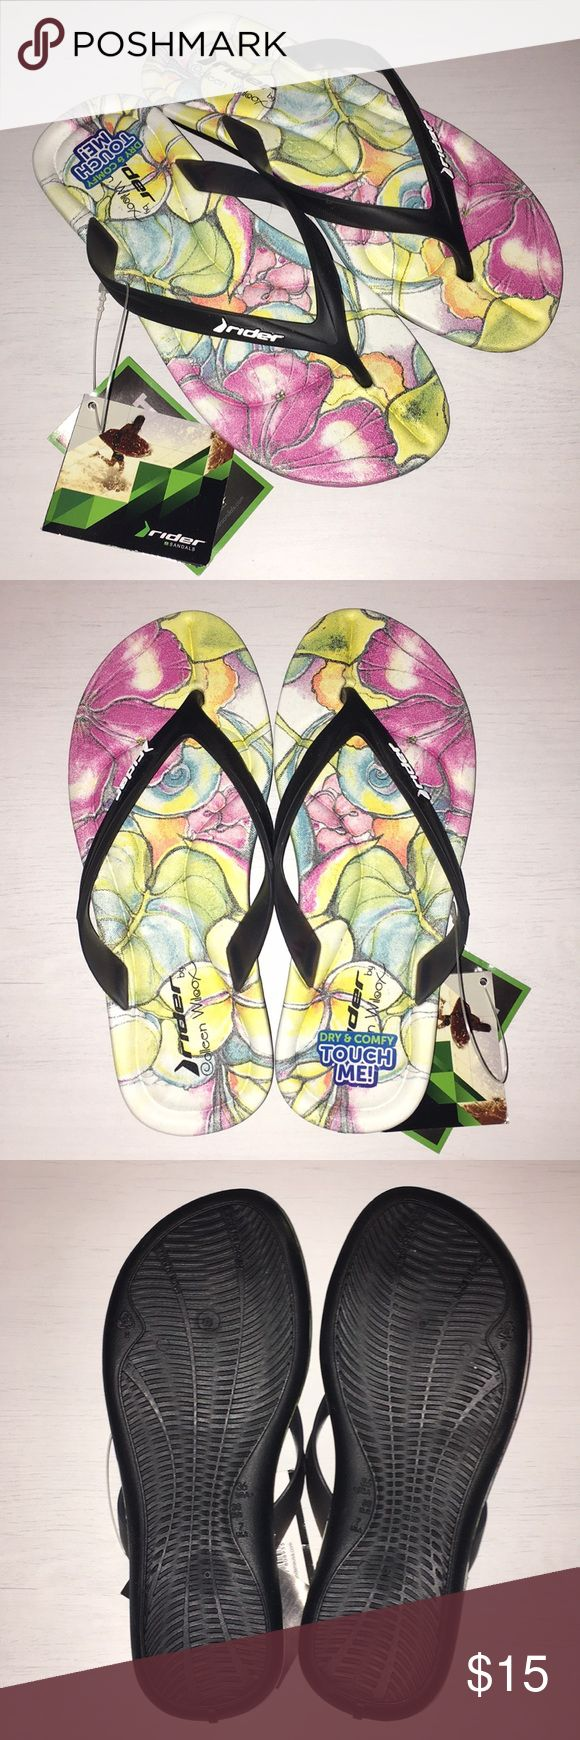 NWT Women's flip flops NWT Women's flip flops. Super comfy made with dry eco foam for a cushiony feel. Feel free to ask any questions :) Rider Shoes Sandals